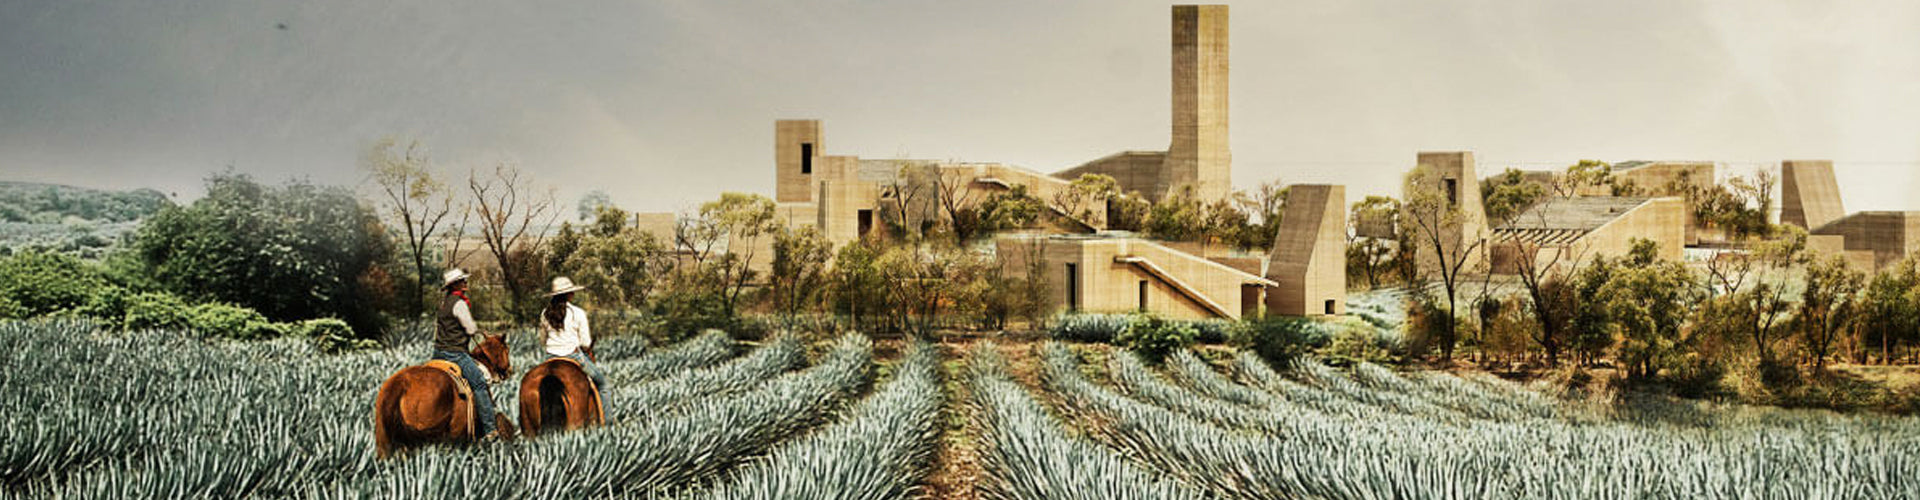 Field of Organic Agave for Clase Azul Tequila